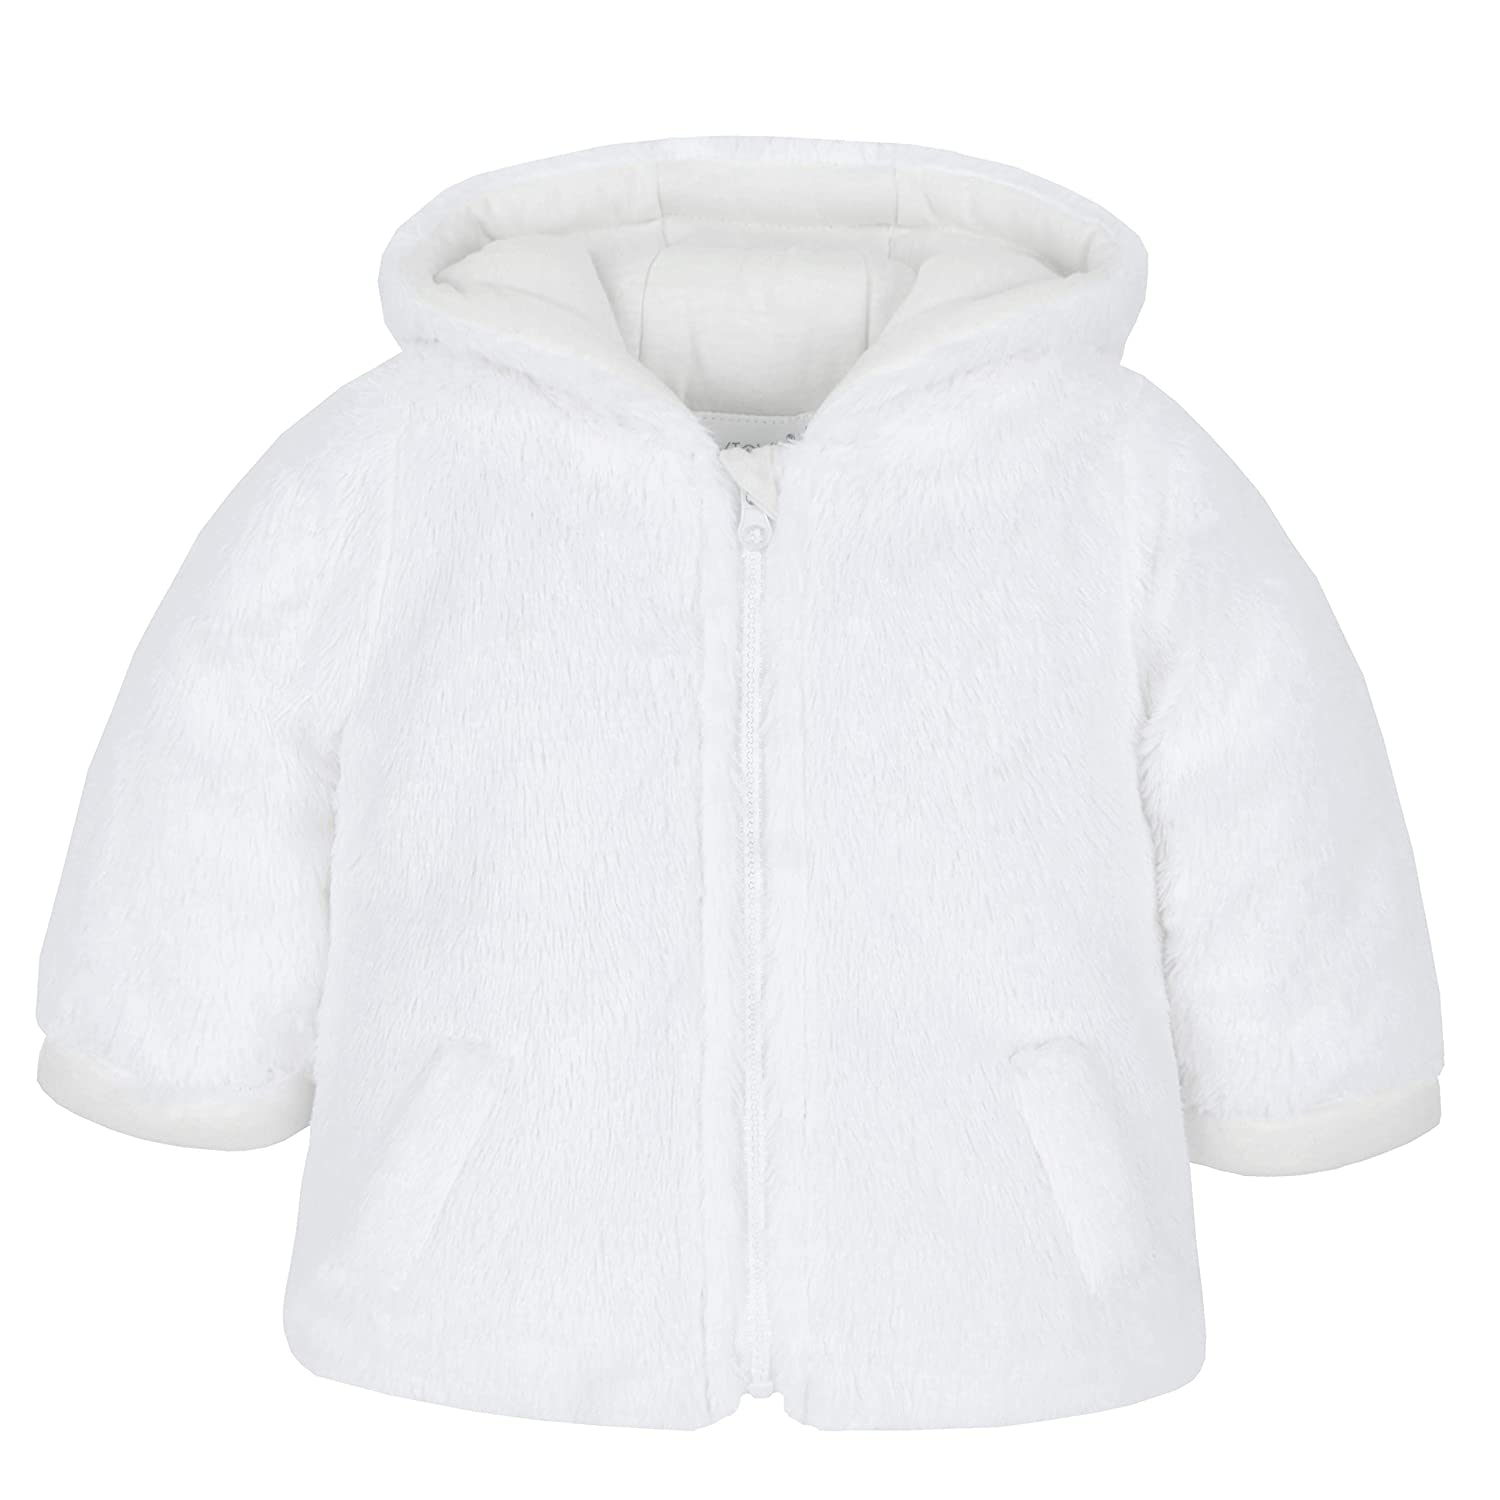 Babies Soft Feel Hooded Winter Snuggle Coat